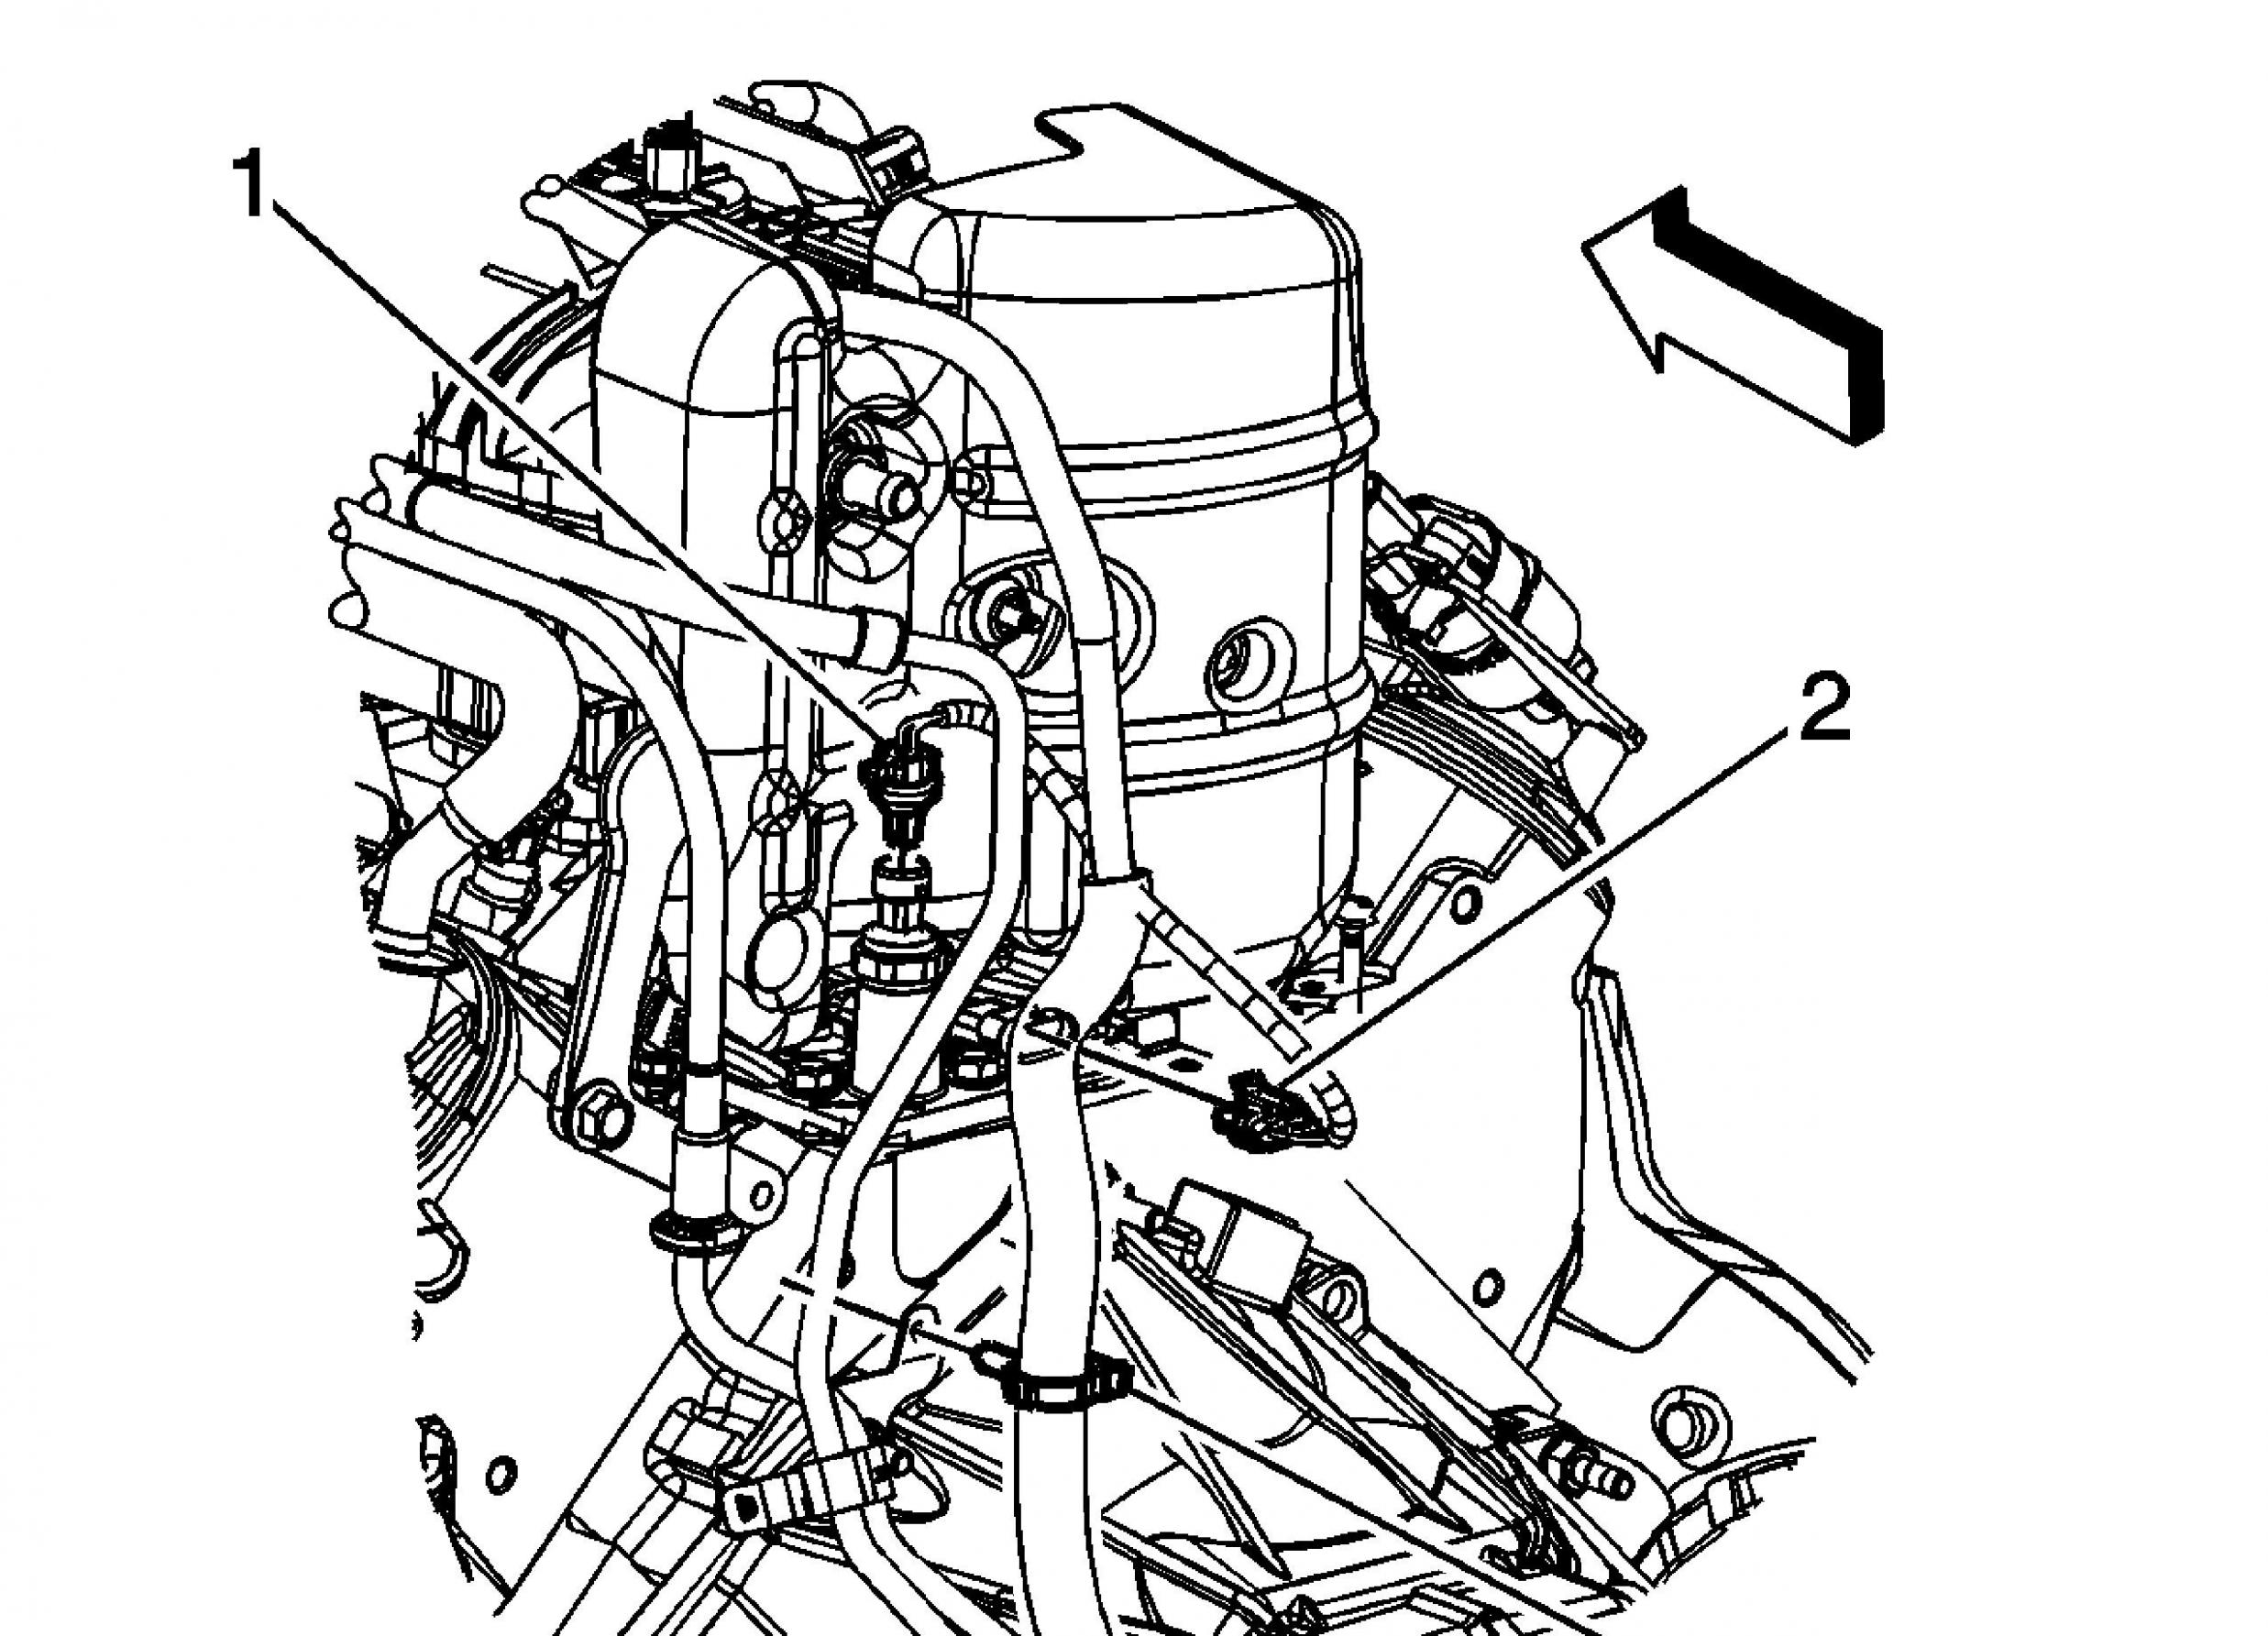 Location Of Fuel Filter 99 Suburban